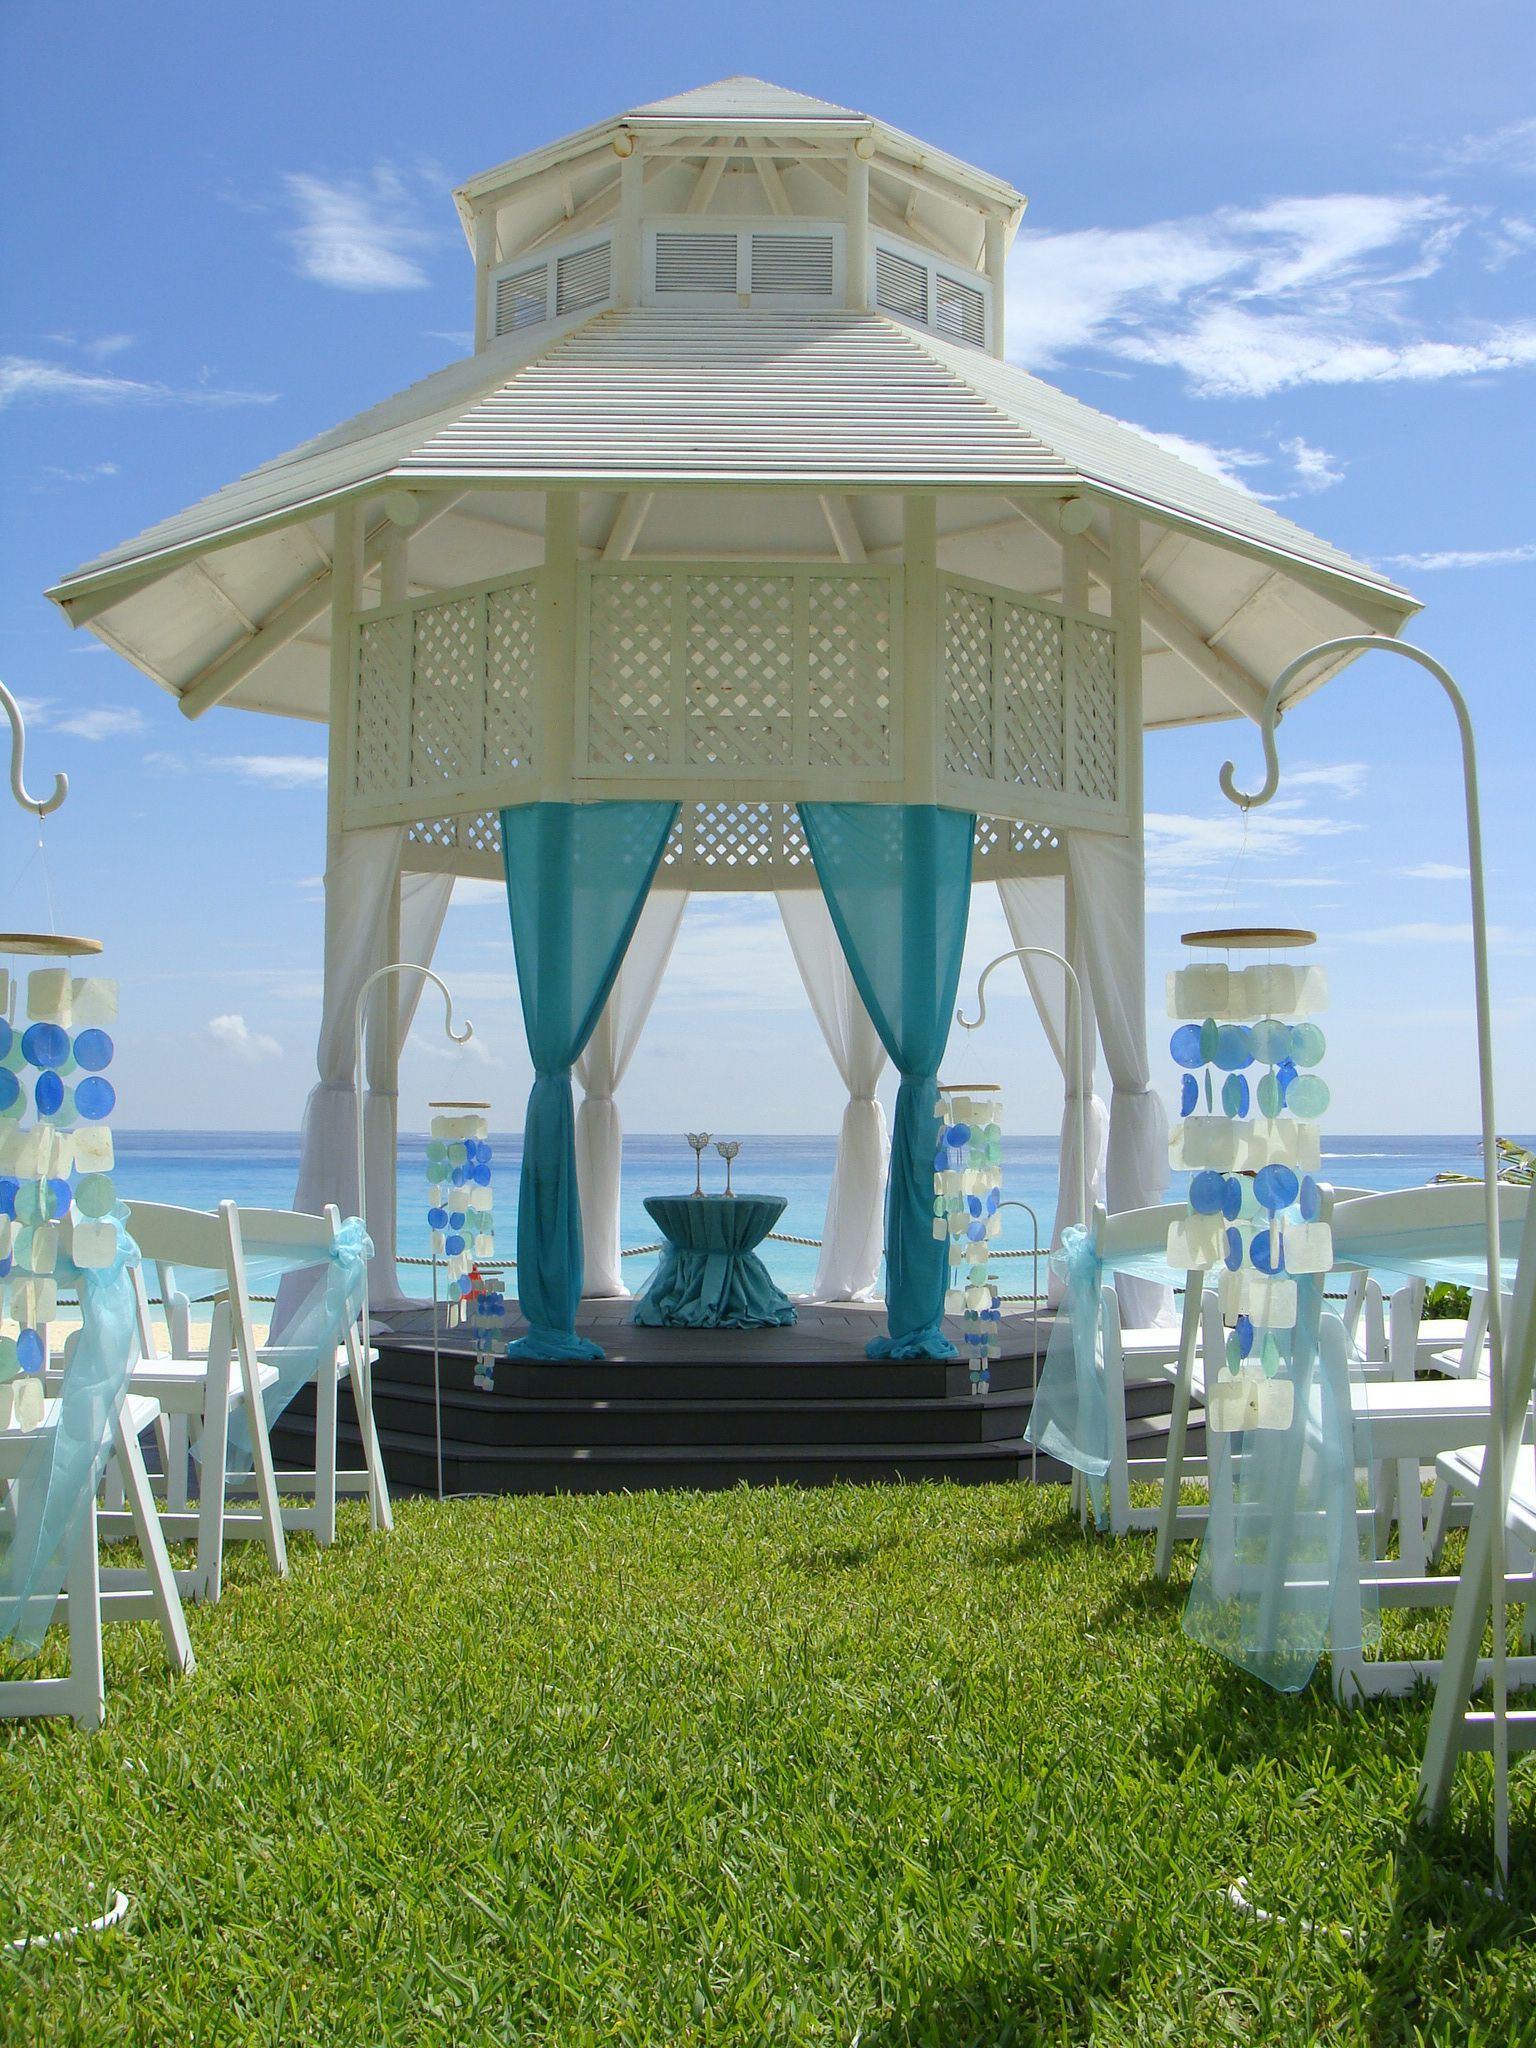 Paradisus Cancun Resort Wedding Gazebo Inspired Voyages Www Inspiredvoyage Email Us At